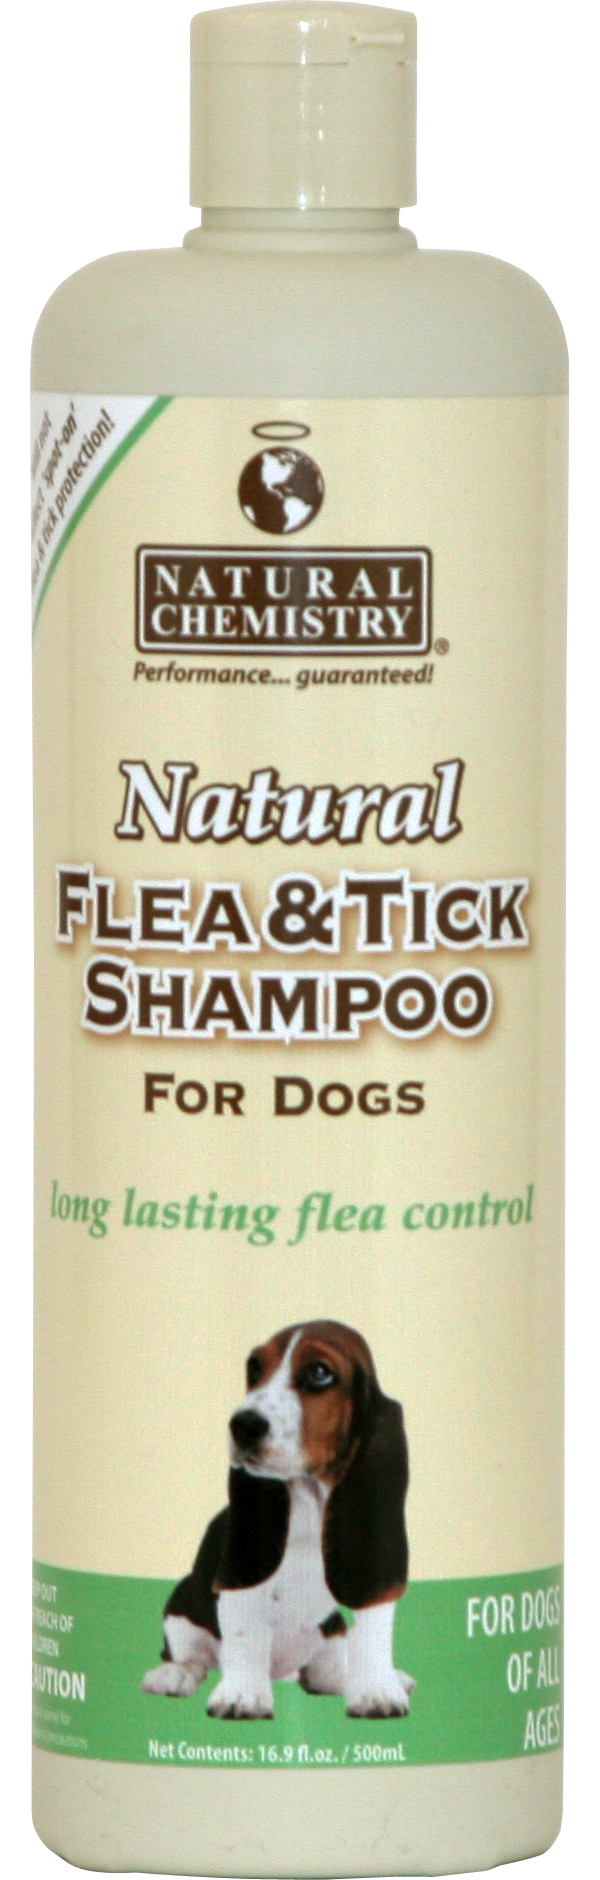 11000_Natural Flea & Tick Shampoo.png